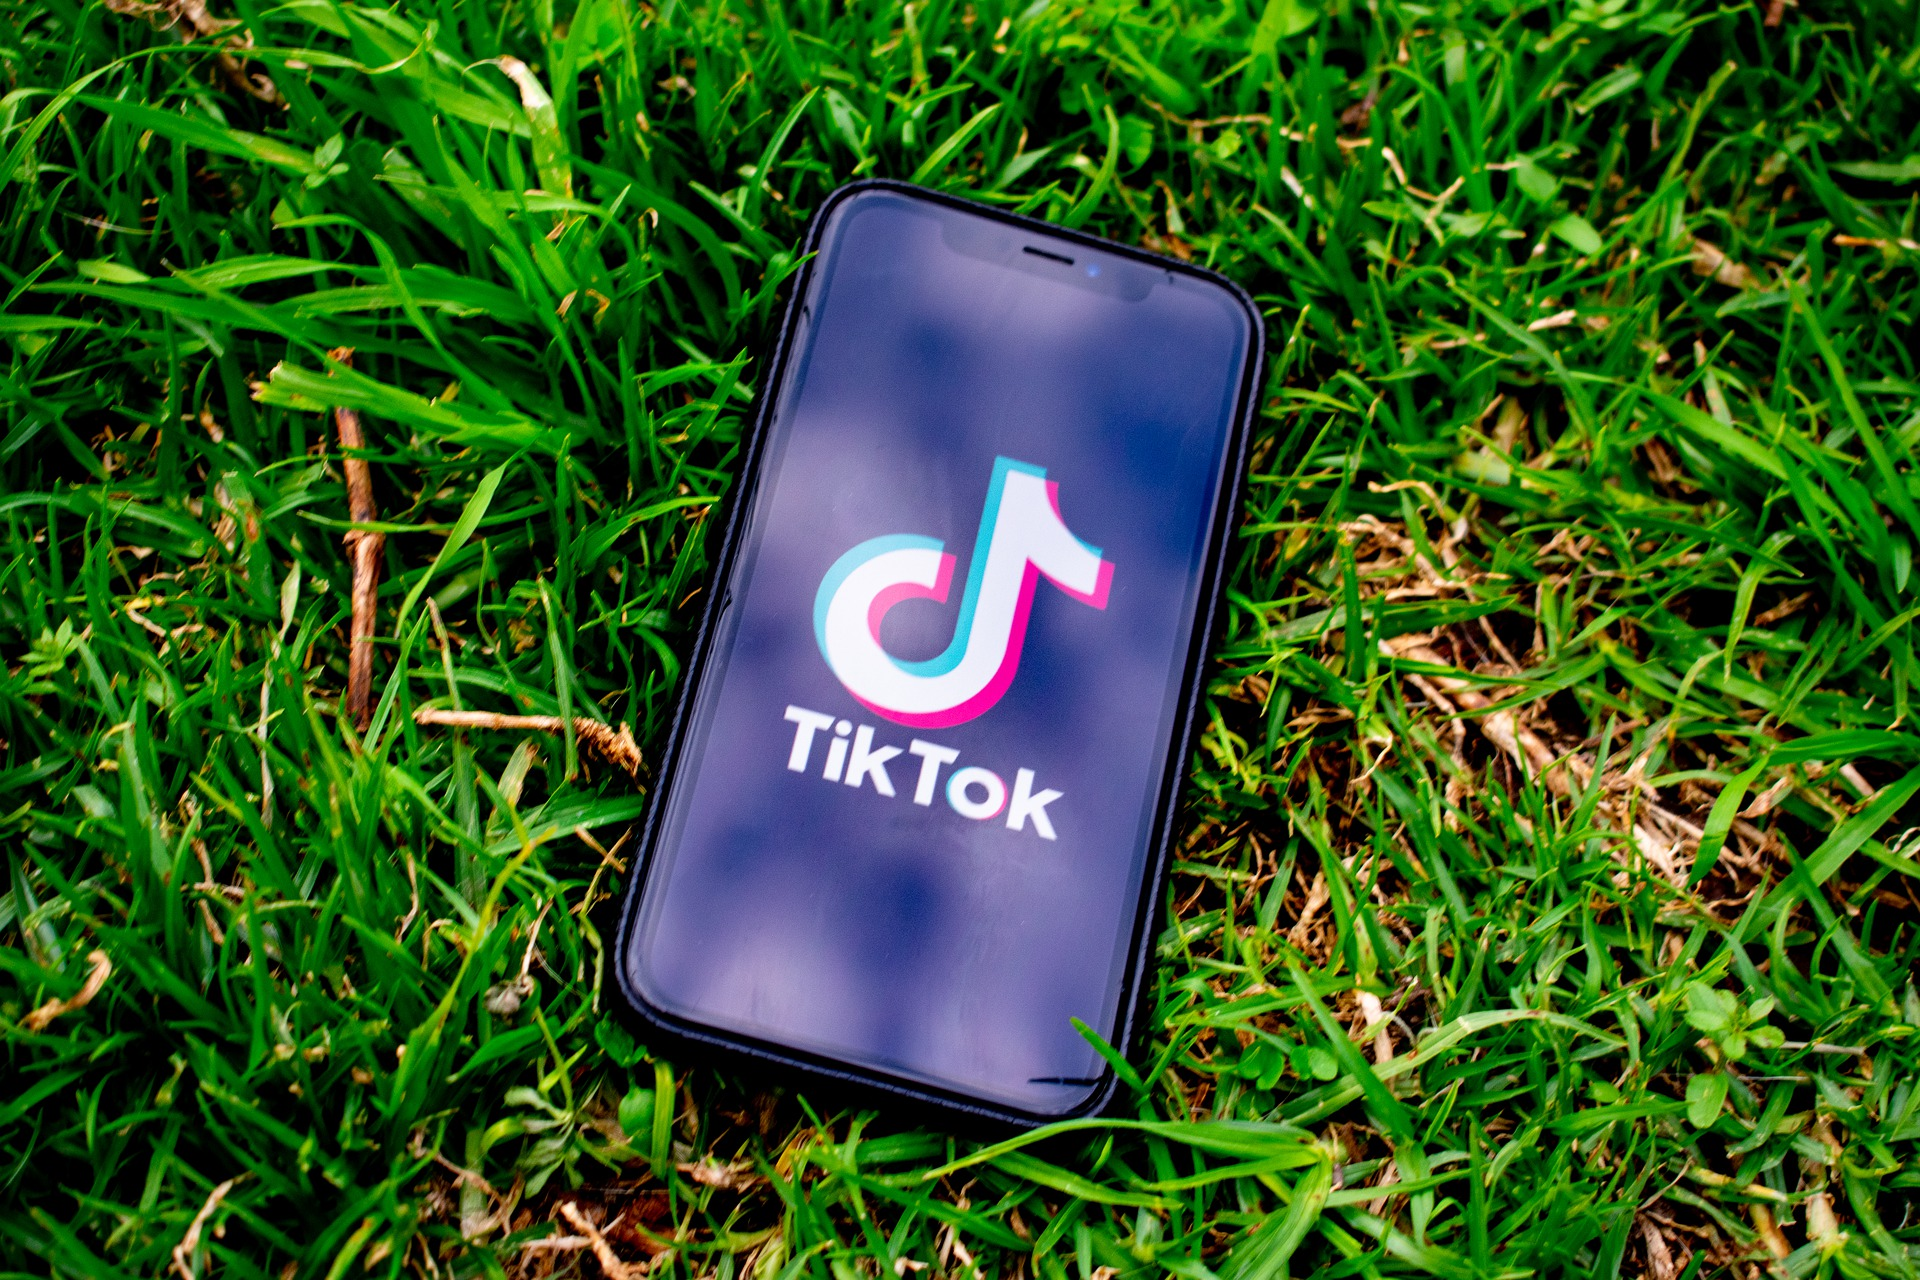 TikTok Is Banning Influencers From Promoting Cryptocurrencies